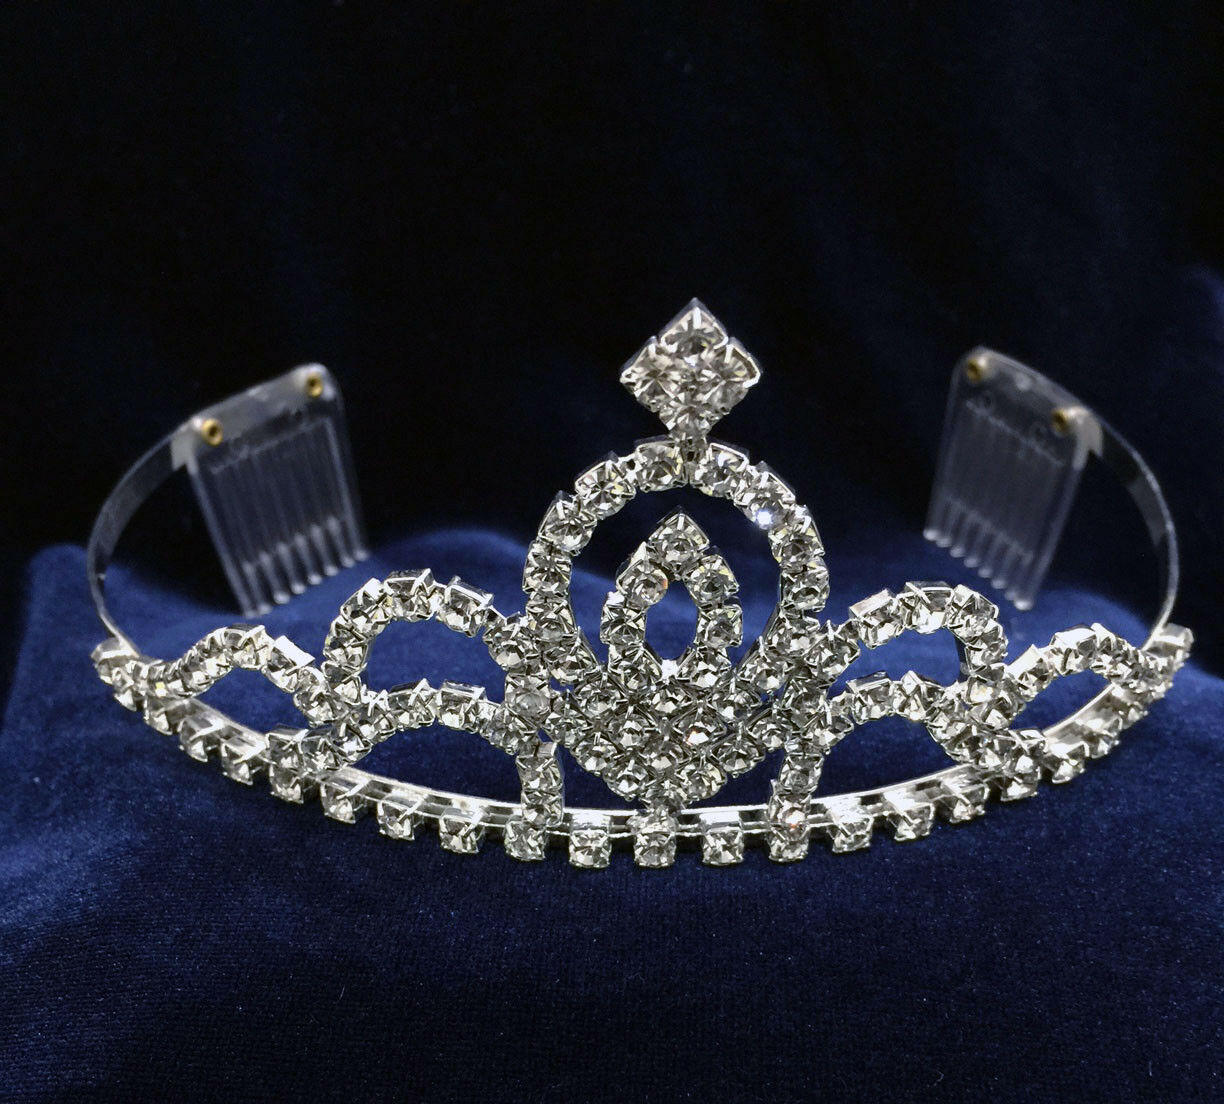 Crystal Rhinestones Silver Plated With Combs.Silver Tiara.2 .25 Inches Tall